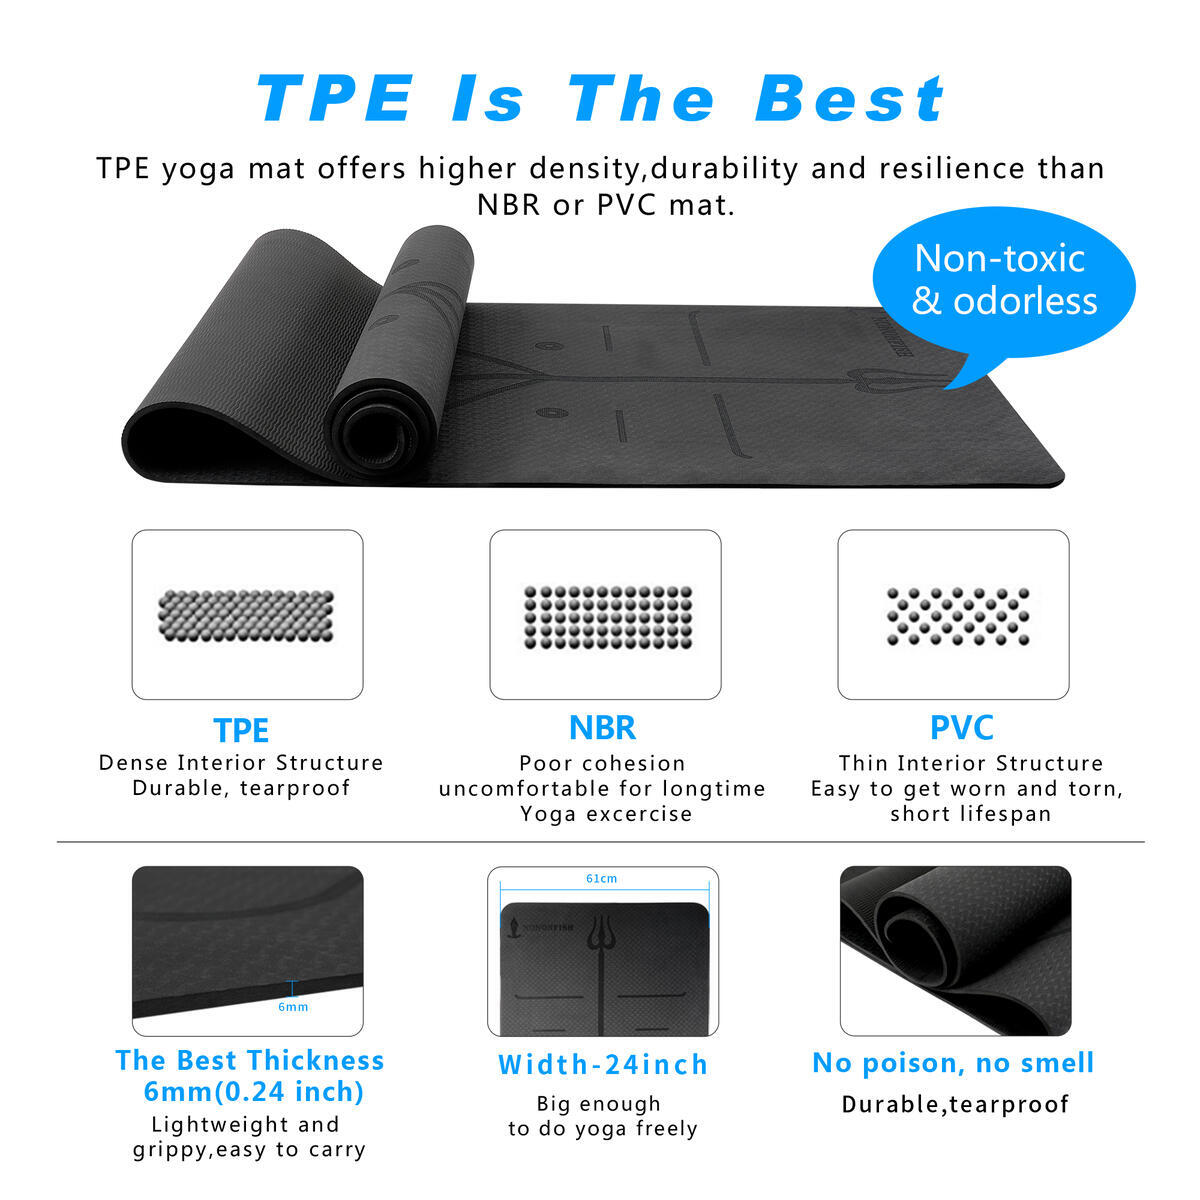 Nononfish Premium EcoFriendly TPE yoga mat 72